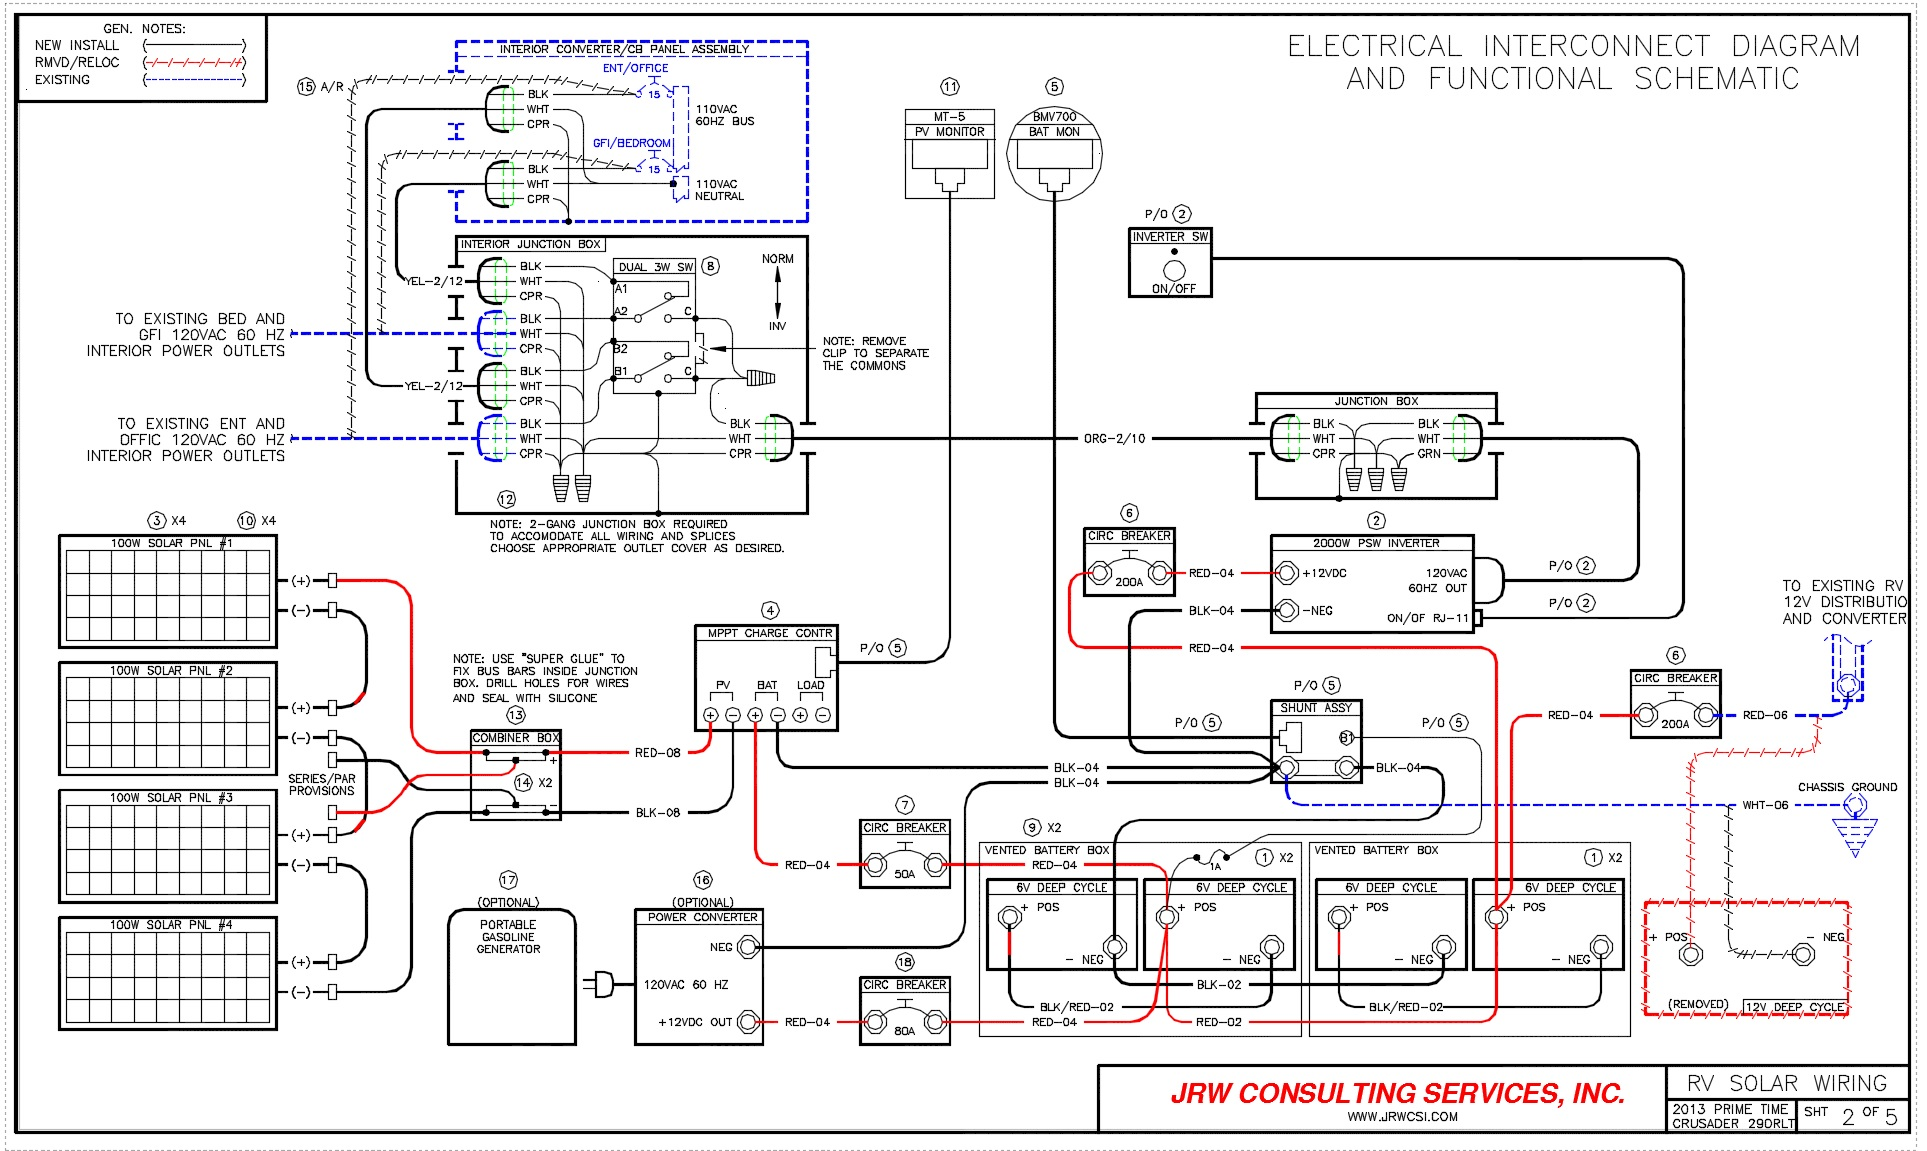 Crusader Rv Electrical Diagram Trusted Wiring Aq130 Power Upgrade Live Breathe Move 2000 R Vision Condor